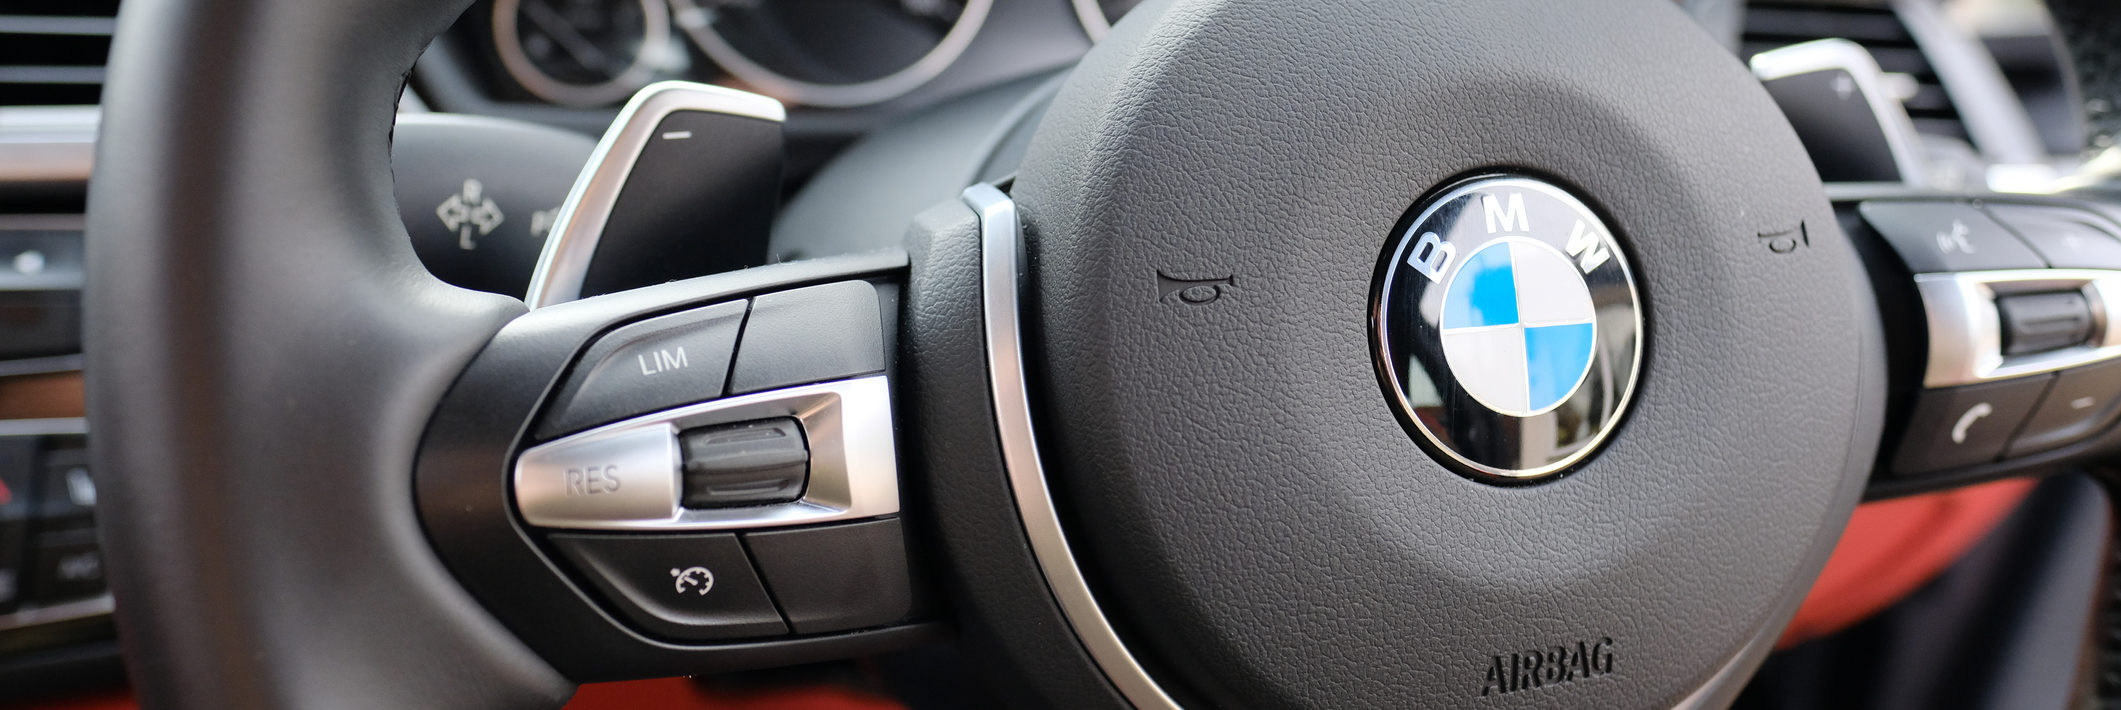 Steering wheel view of a BMW sports coupe model